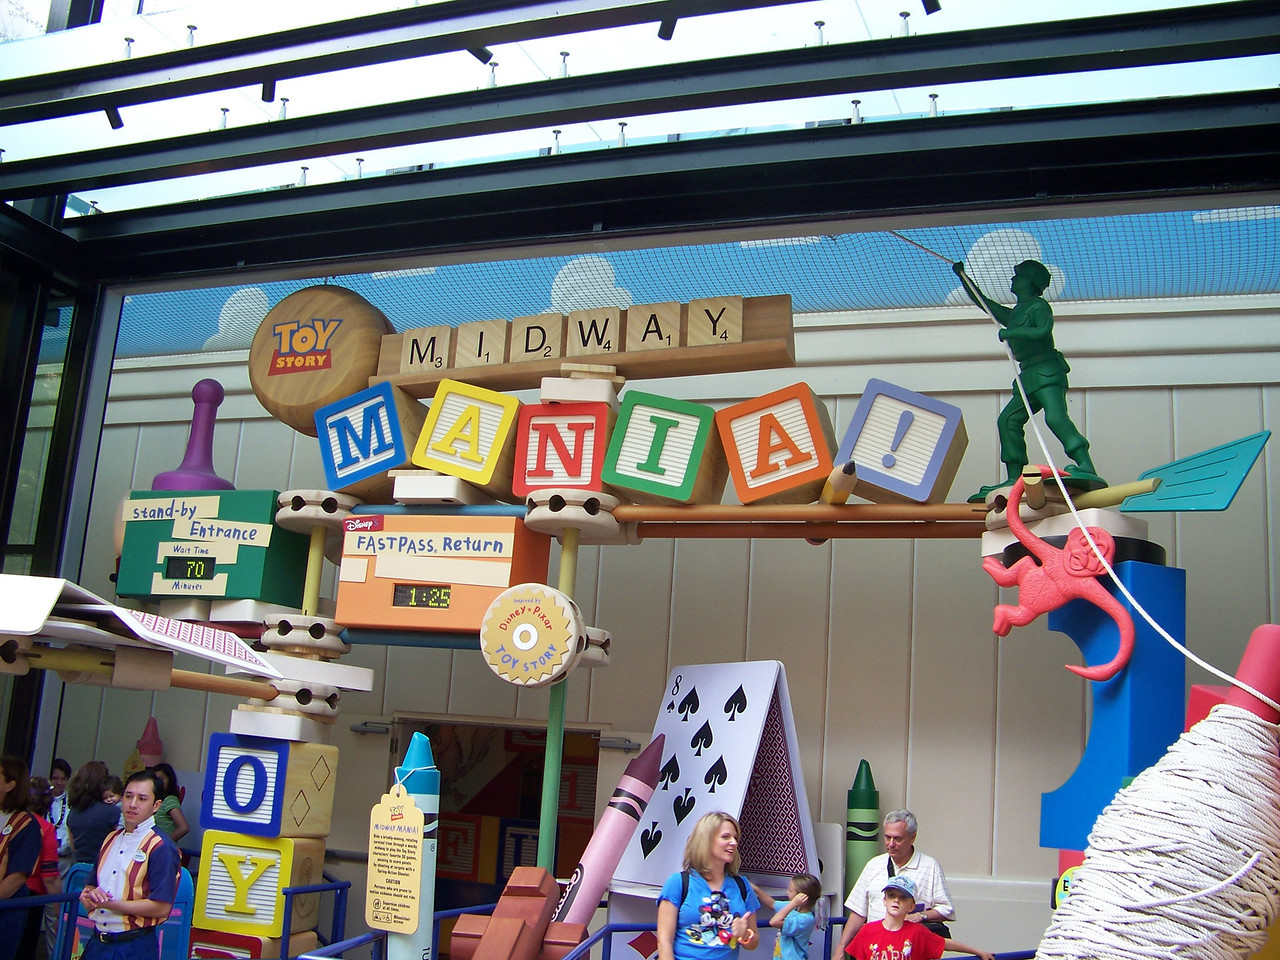 The attraction in the Pixar Studios section is Toy Story Midway Mania.   This is the entrance.<br /> [Disney's Hollywood Studios]